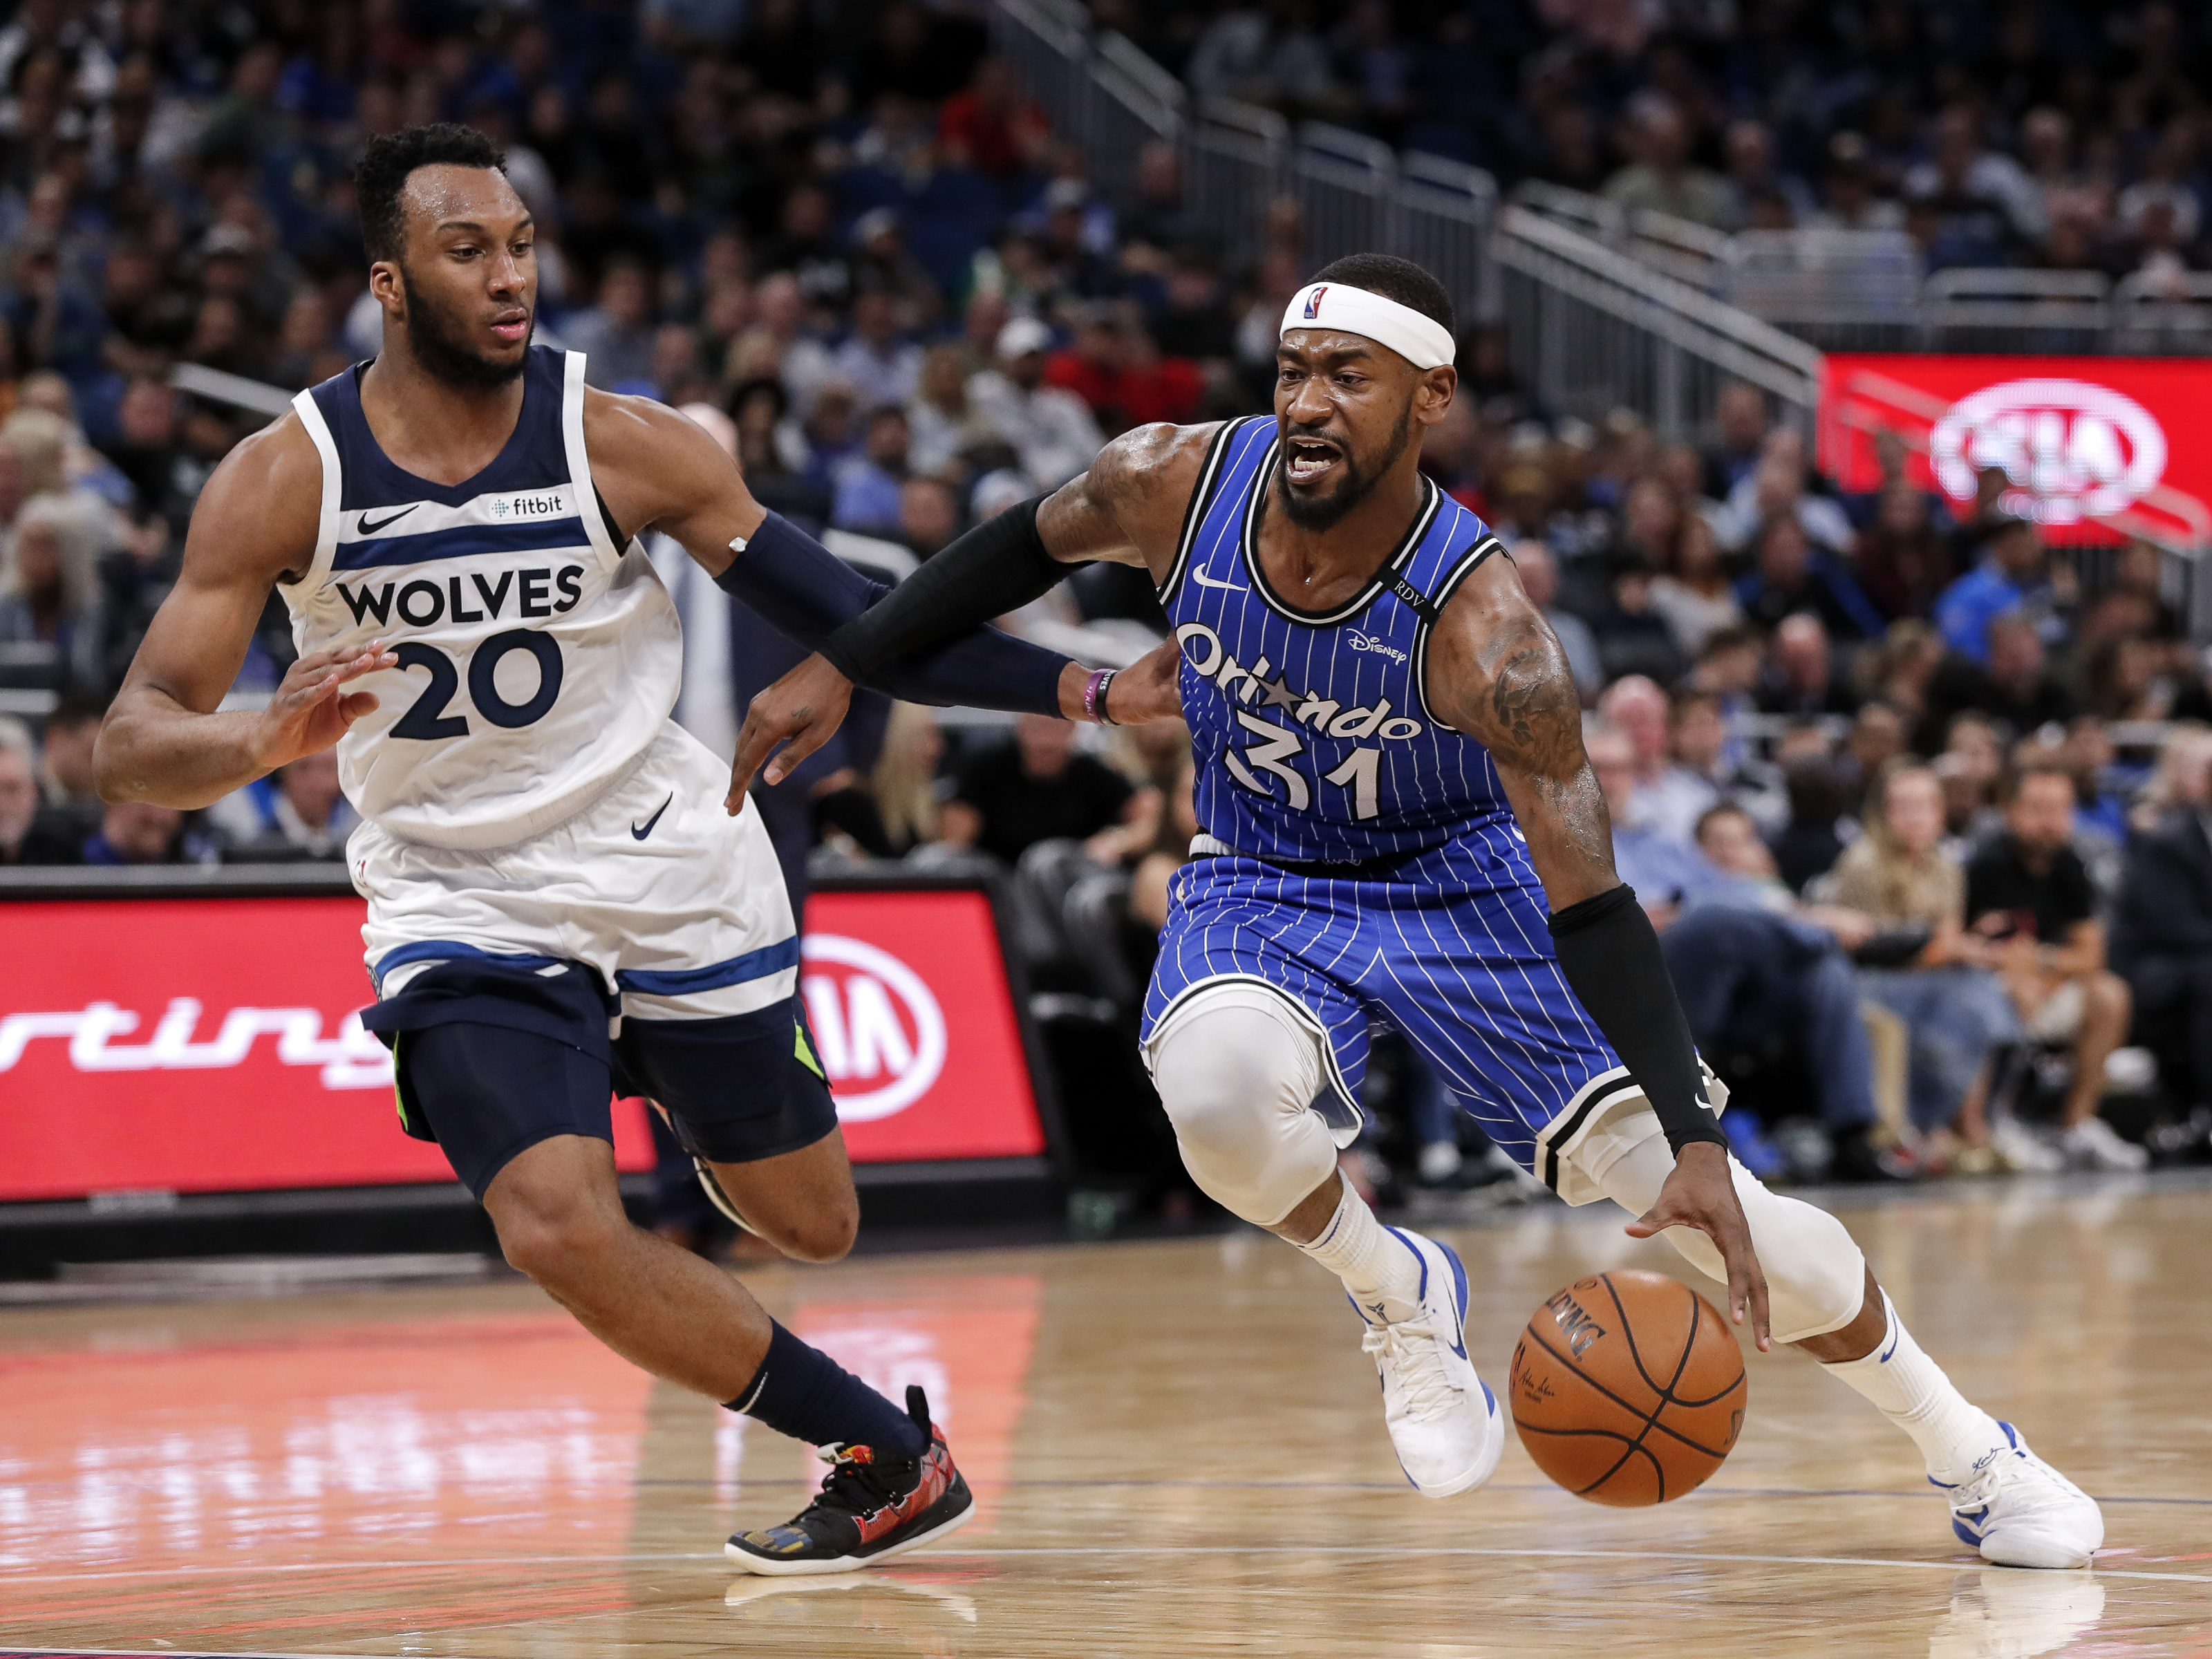 Orlando Magic vs. Minnesota Timberwolves (Feb. 28, 2020): How to Watch, Odds and Prediction